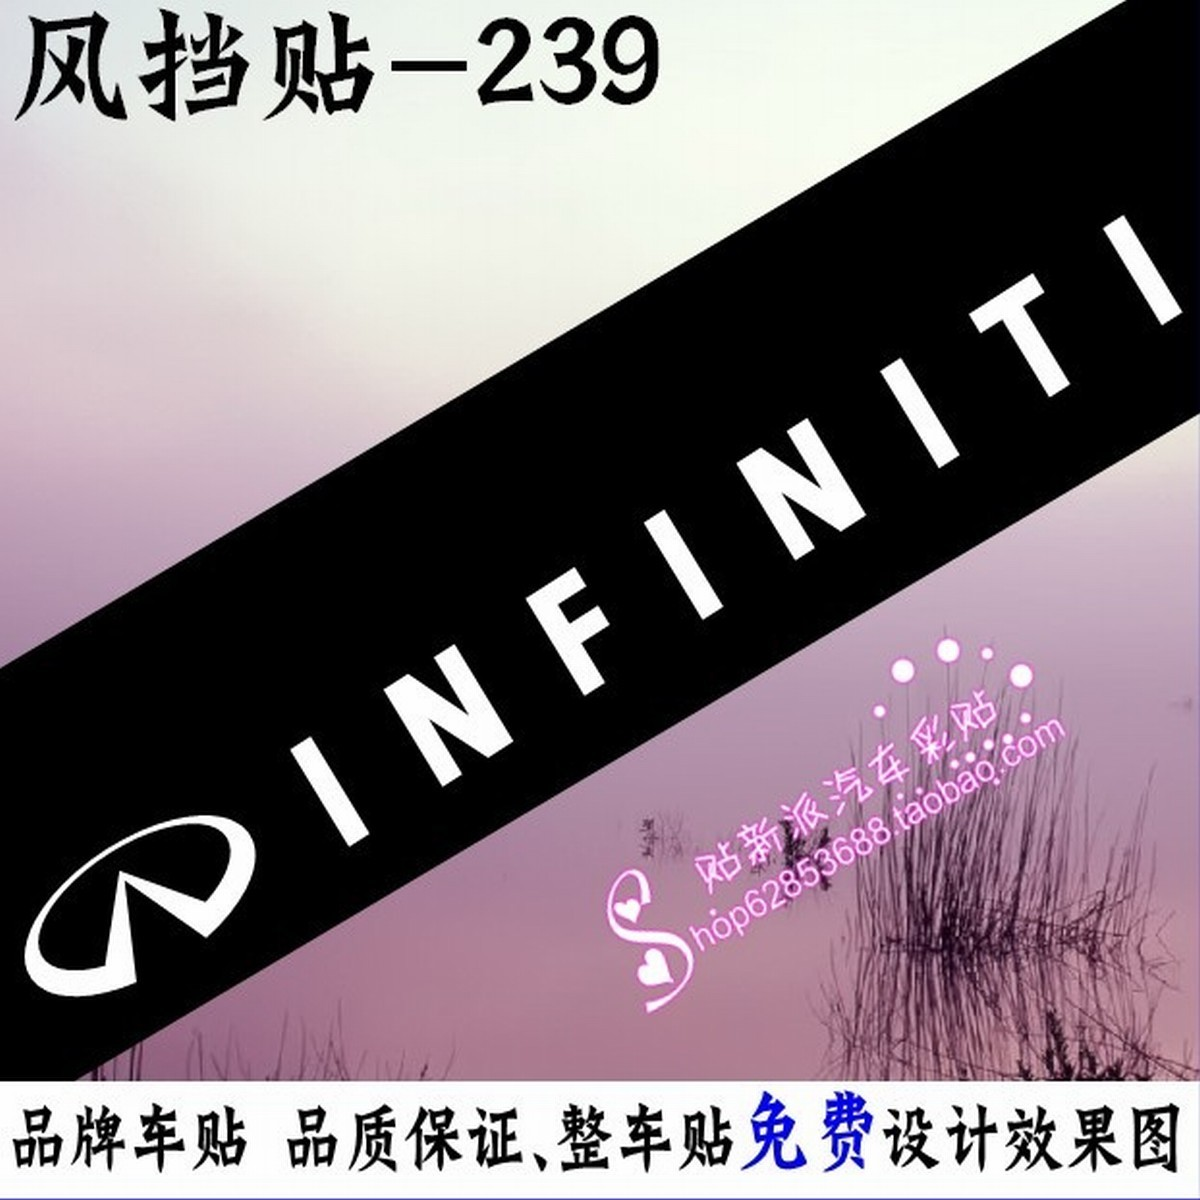 Car glass sticker design - Car Sticker Reflective Car Stickers Infiniti Front Stop Stickers Zhuanghe Windshield Glass 239 China